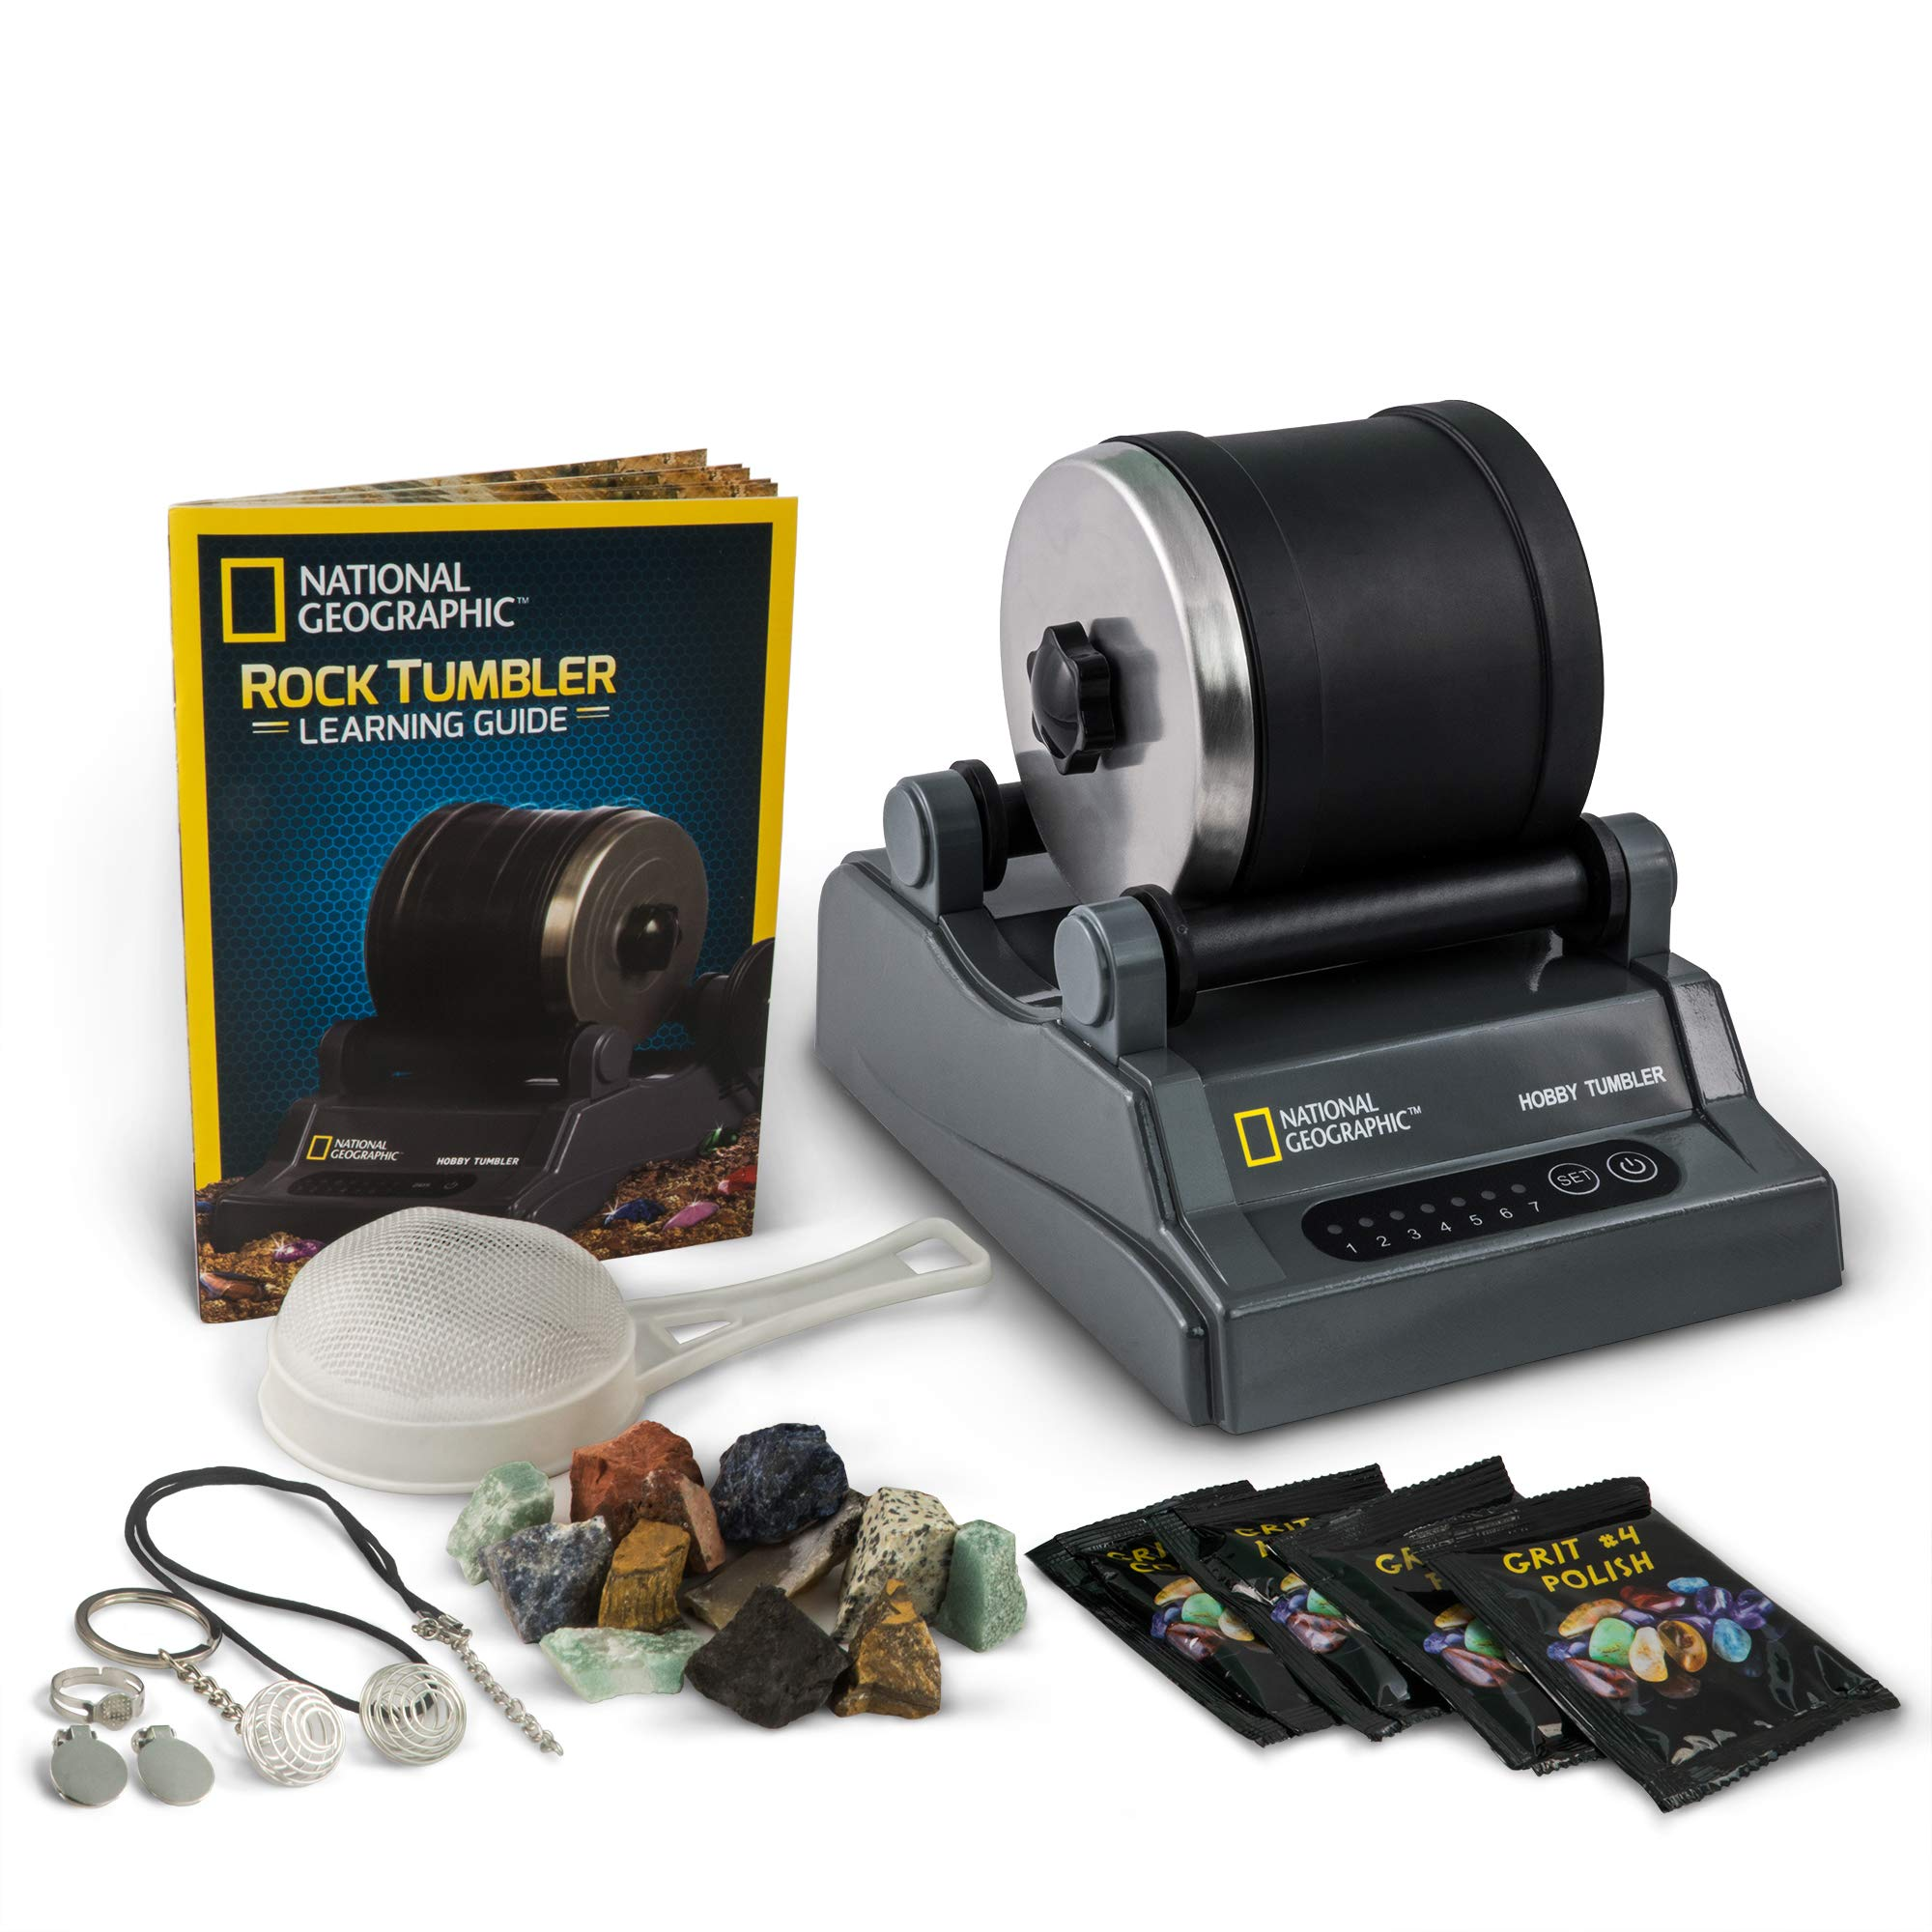 NATIONAL GEOGRAPHIC Hobby Rock Tumbler Kit - Includes Rough Gemstones, 4 Polishing Grits, Jewelry Fastenings & Detailed Learning Guide by NATIONAL GEOGRAPHIC